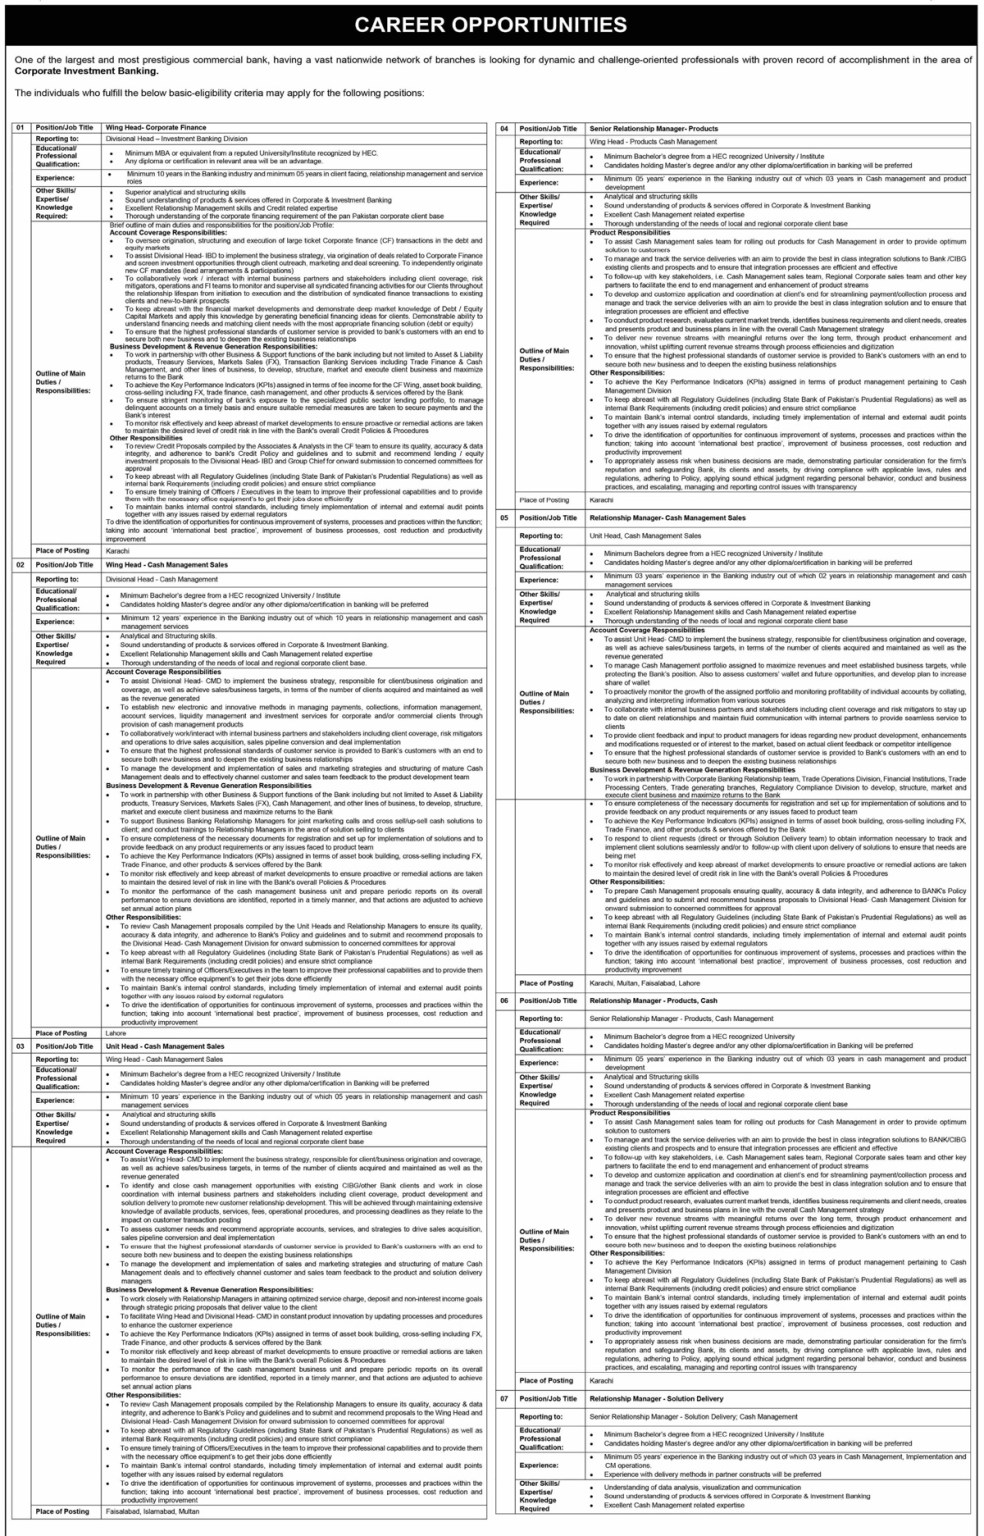 National Bank Of Pakistan Latest Jobs 2021|How To Apply Online In National Bank Jobs 2021|